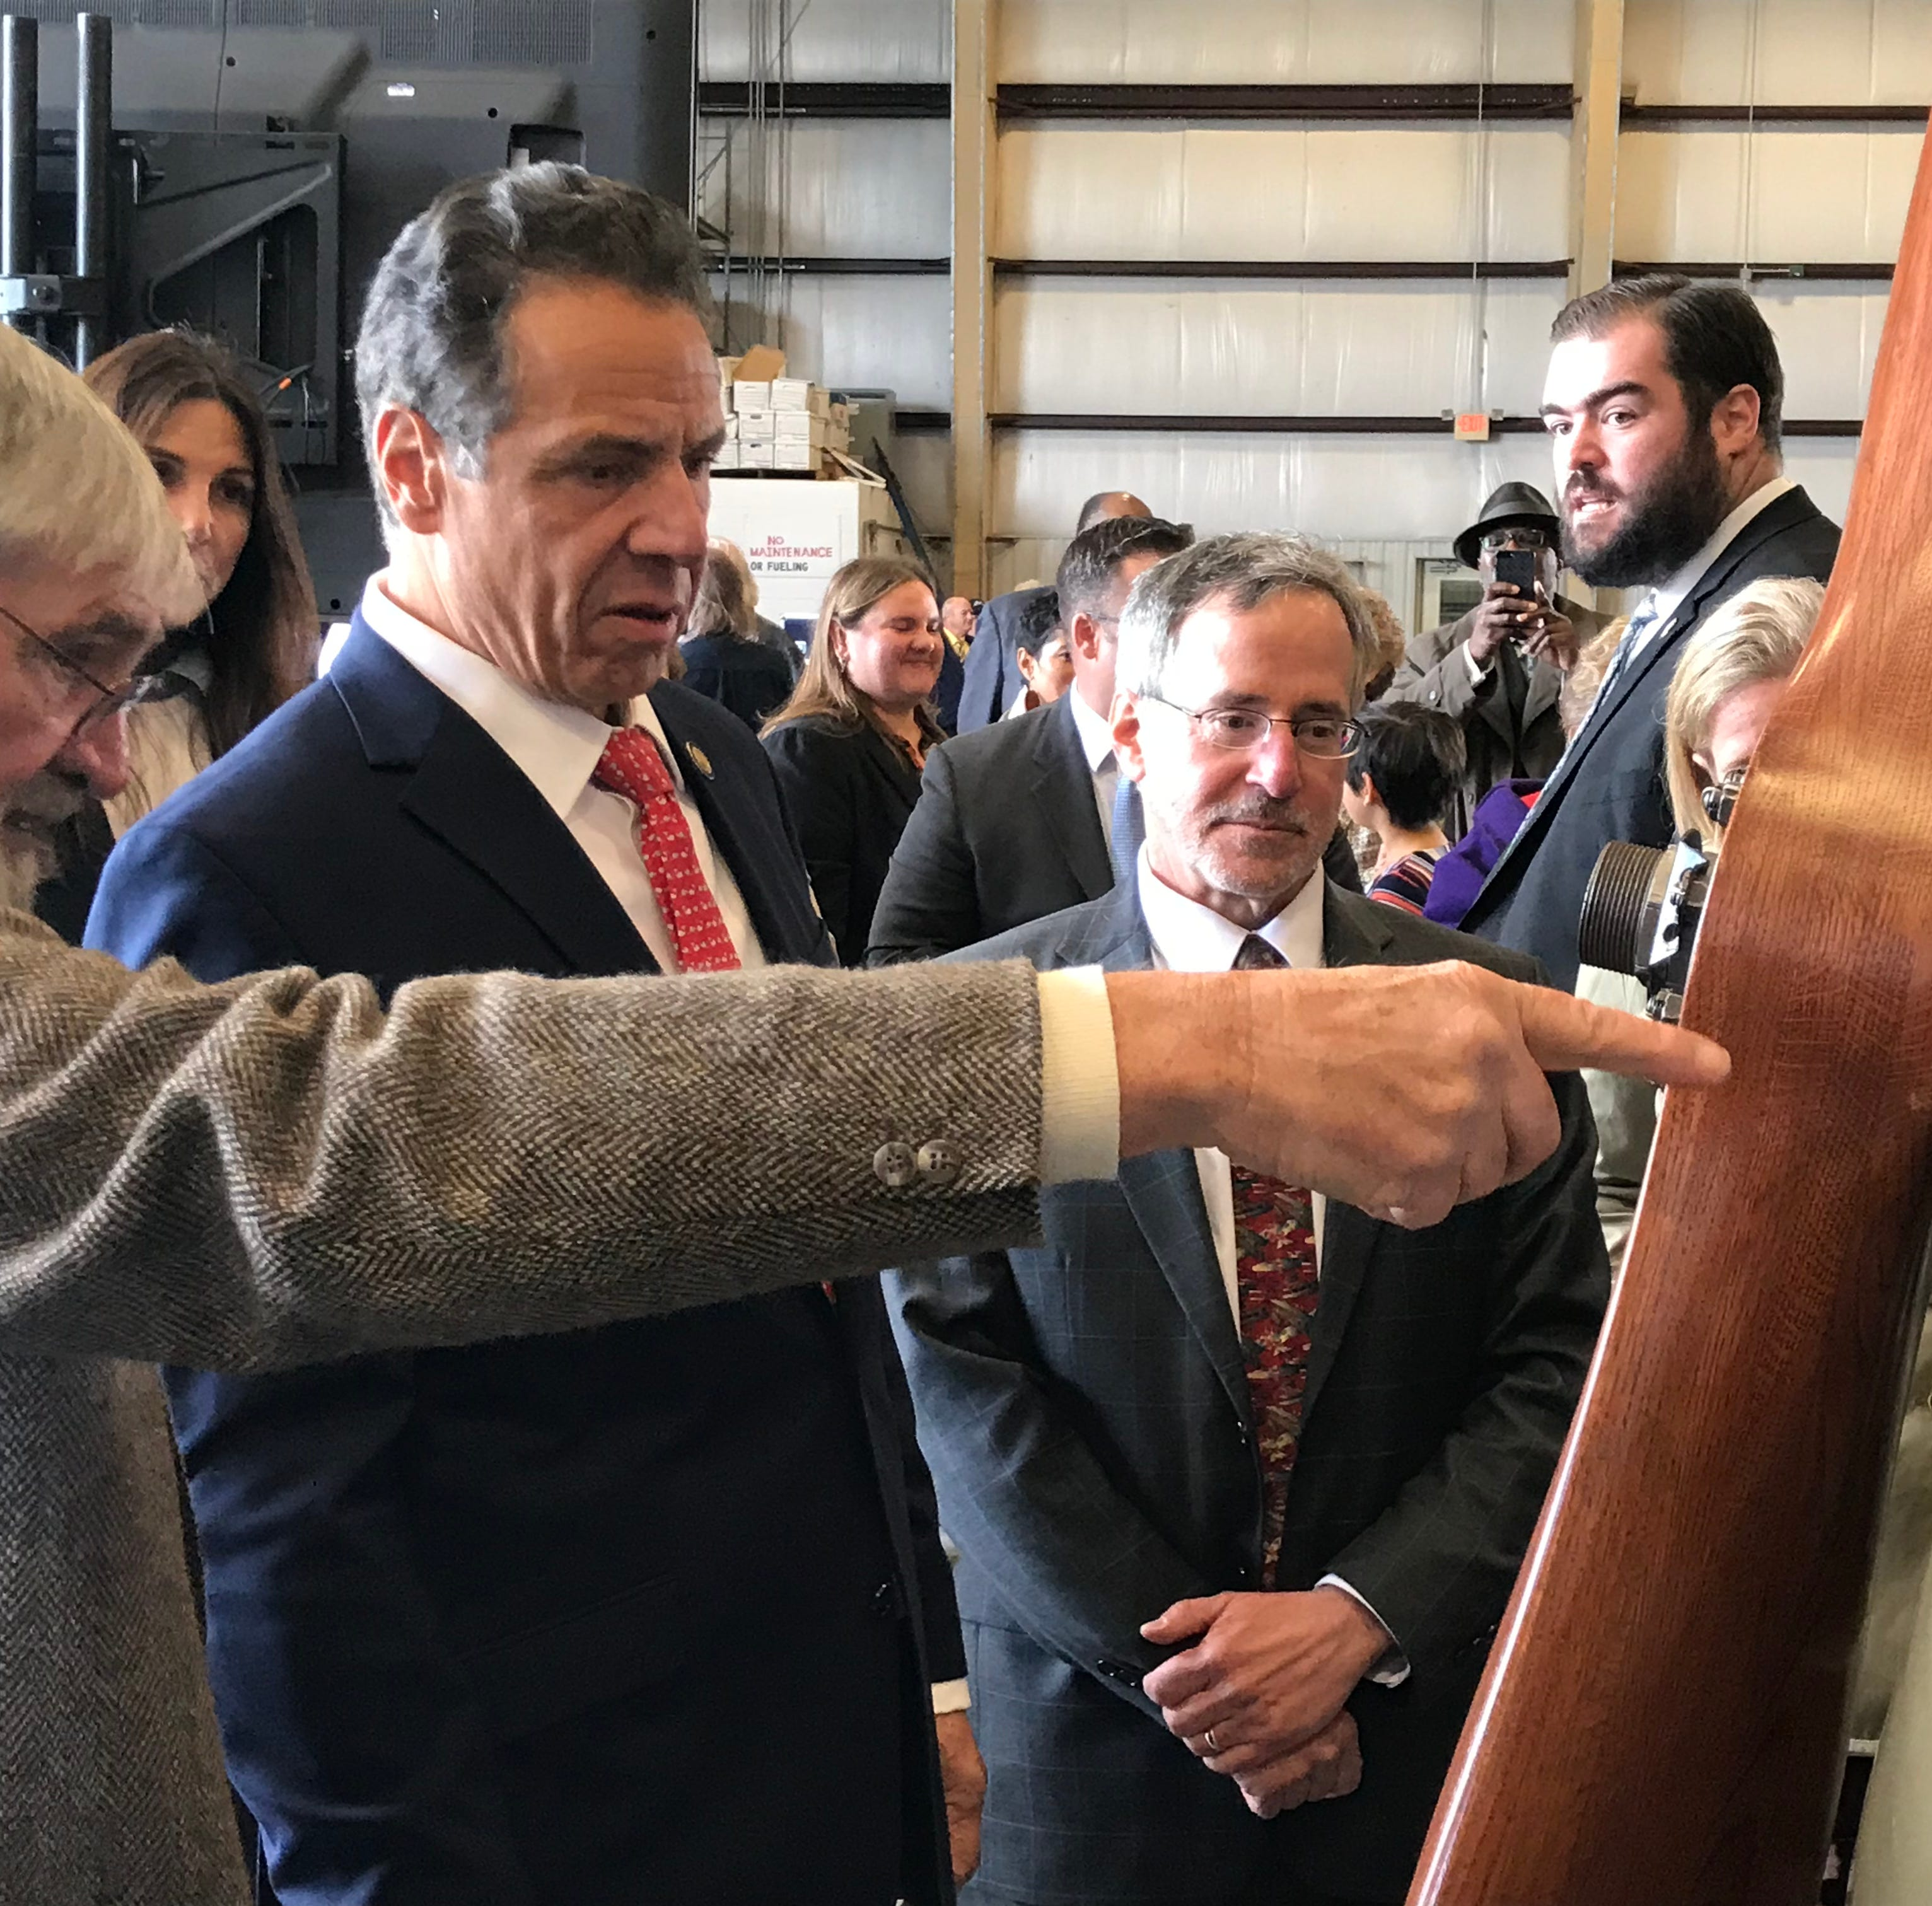 Gov. Andrew Cuomo breaks ground on Ithaca Tompkins Airport expansion